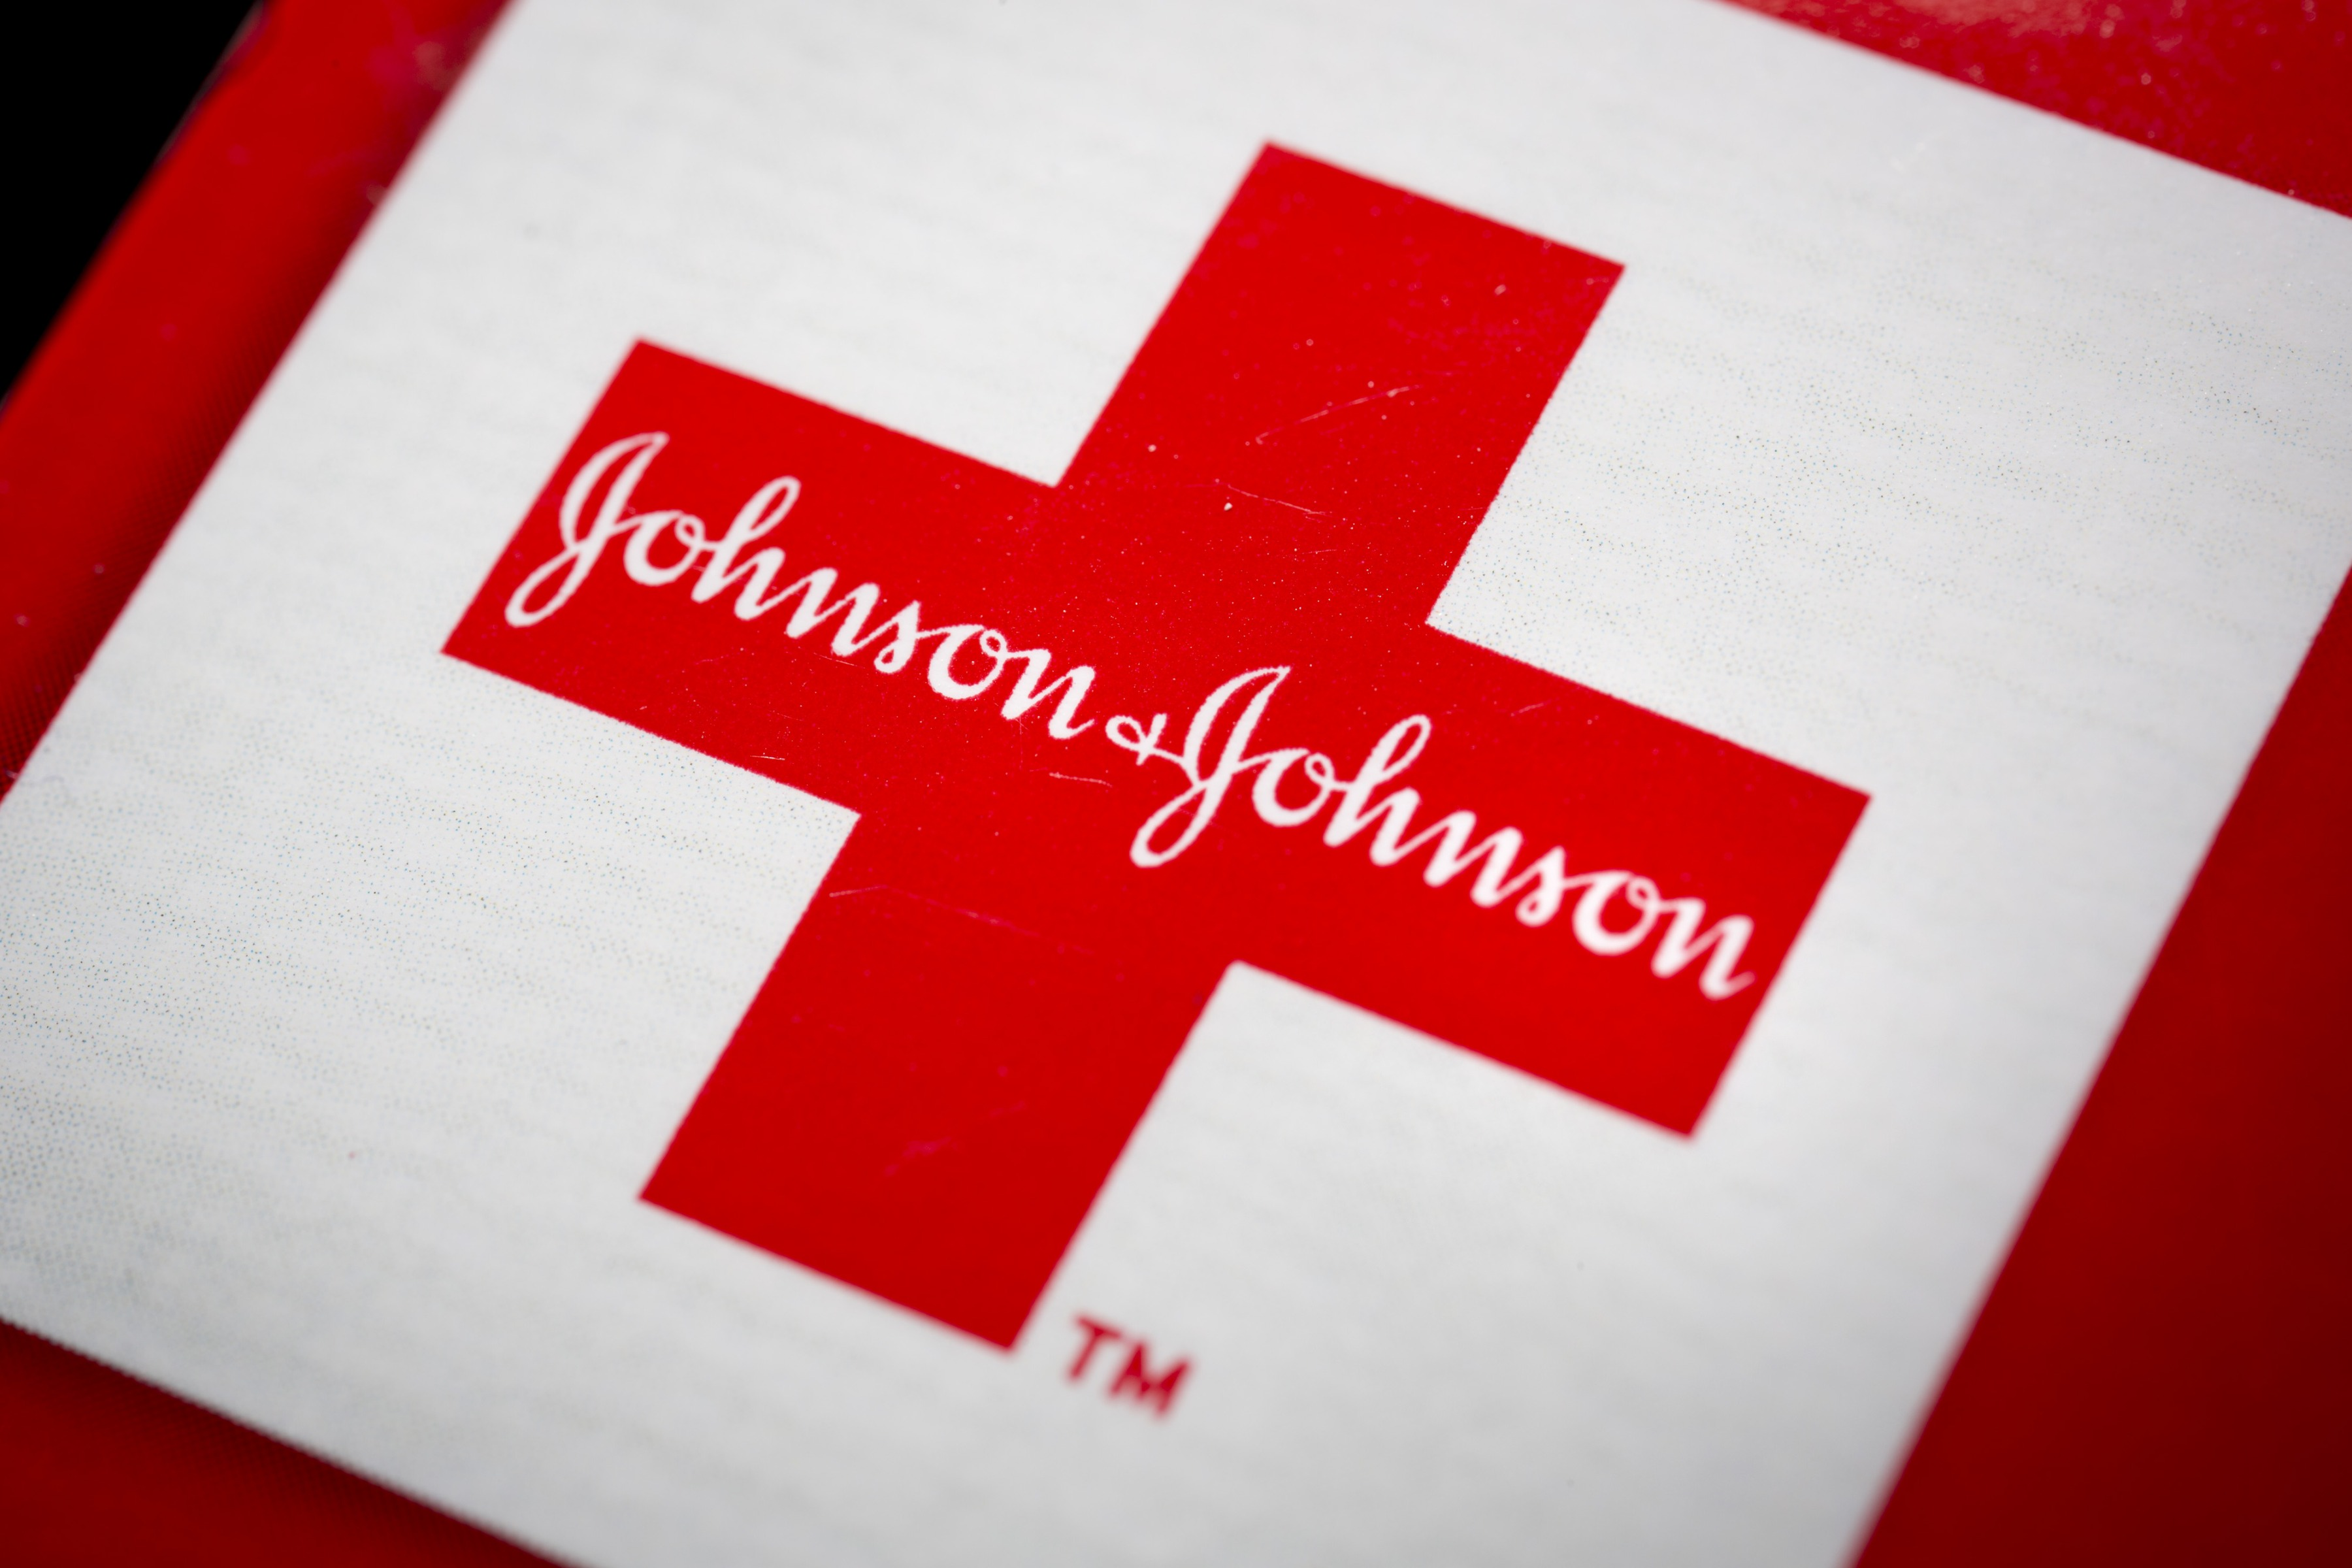 Johnson & Johnson Fueled Opioid Crisis, Trial Witness